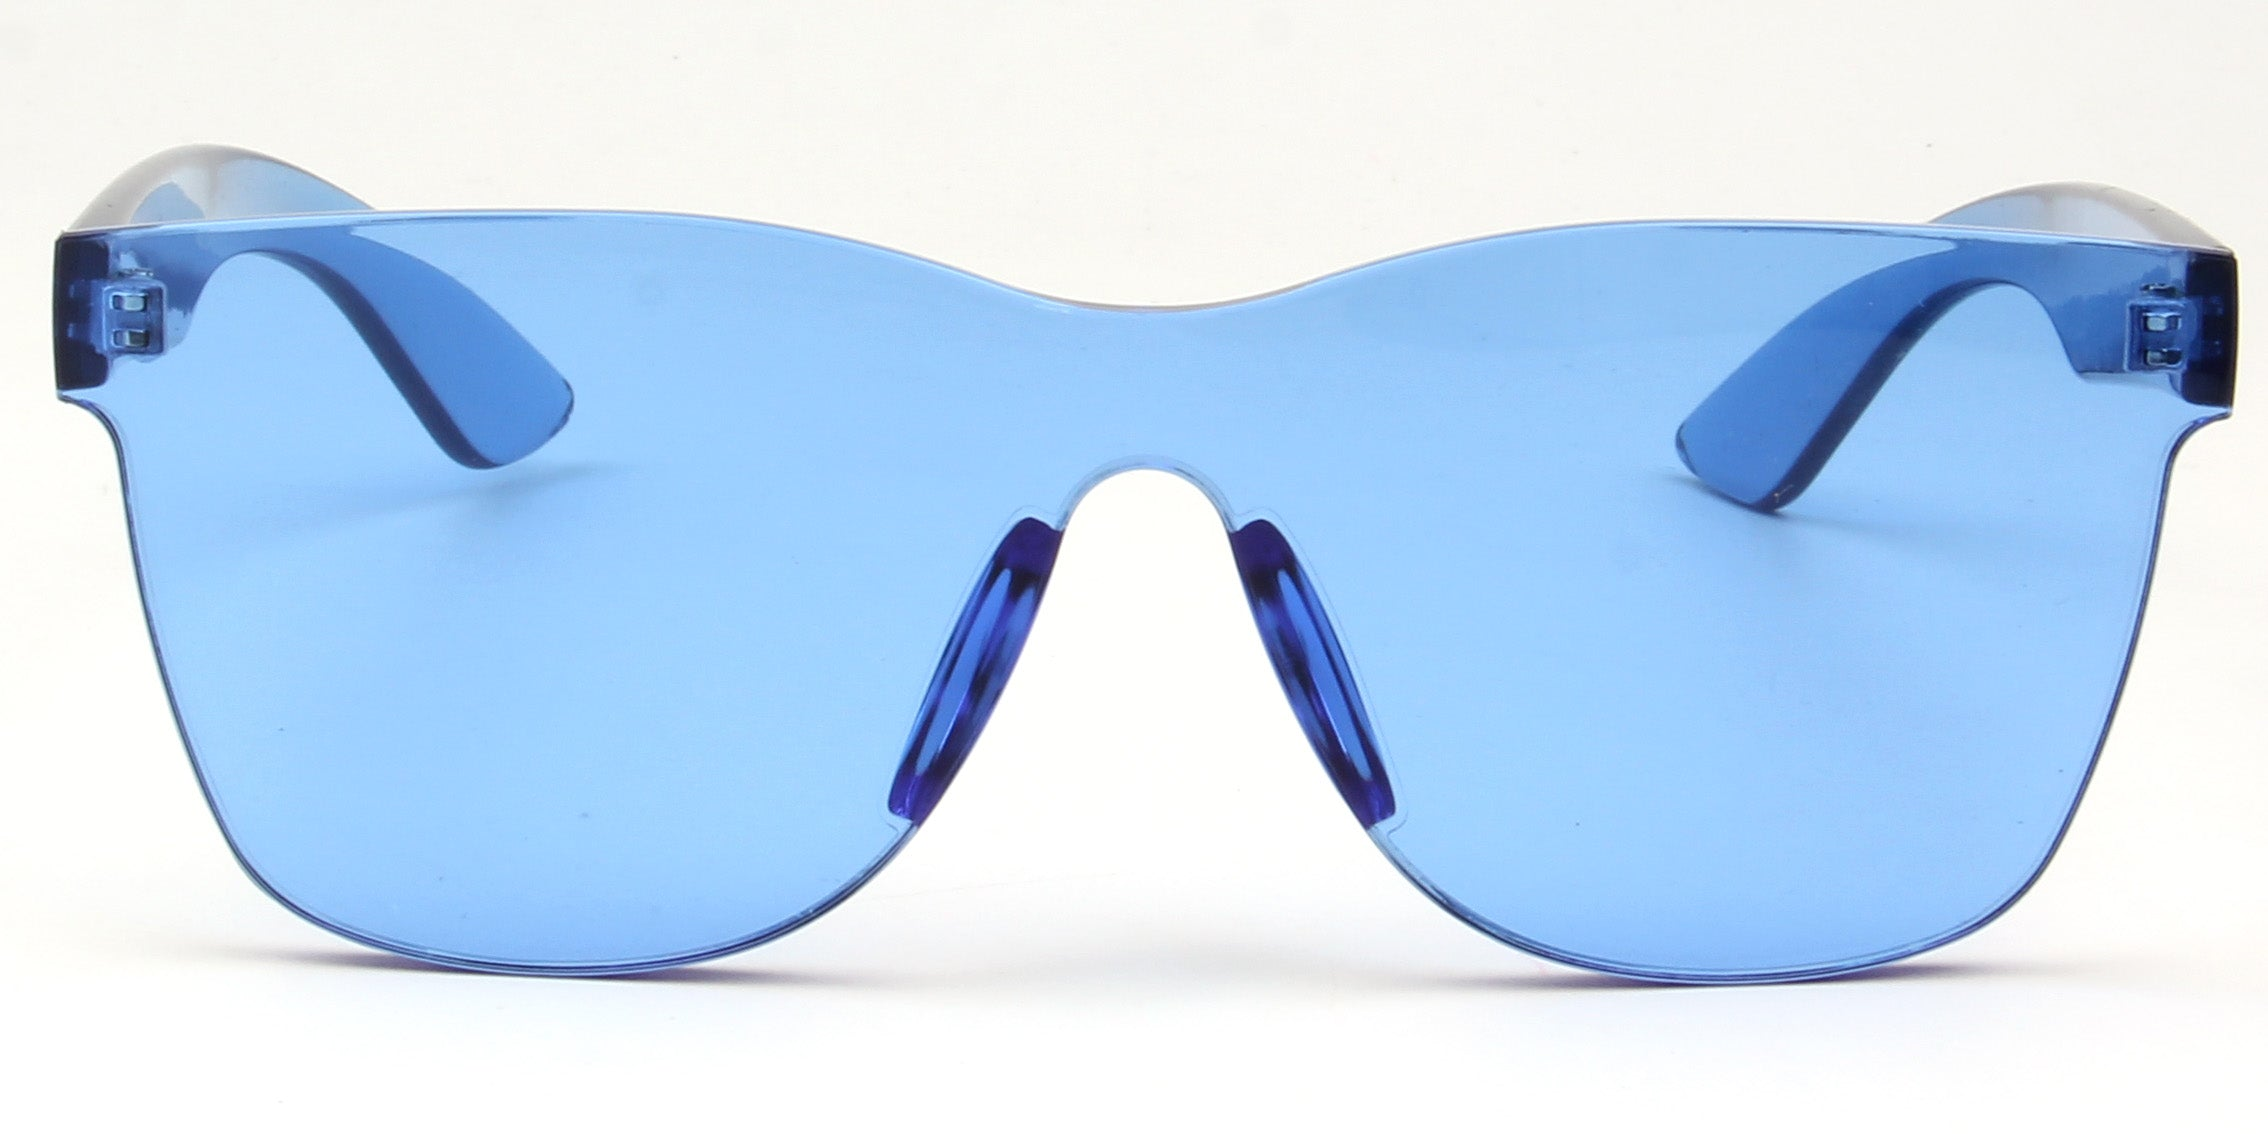 Akcessoryz-Unisex rimless square blue sunglasses